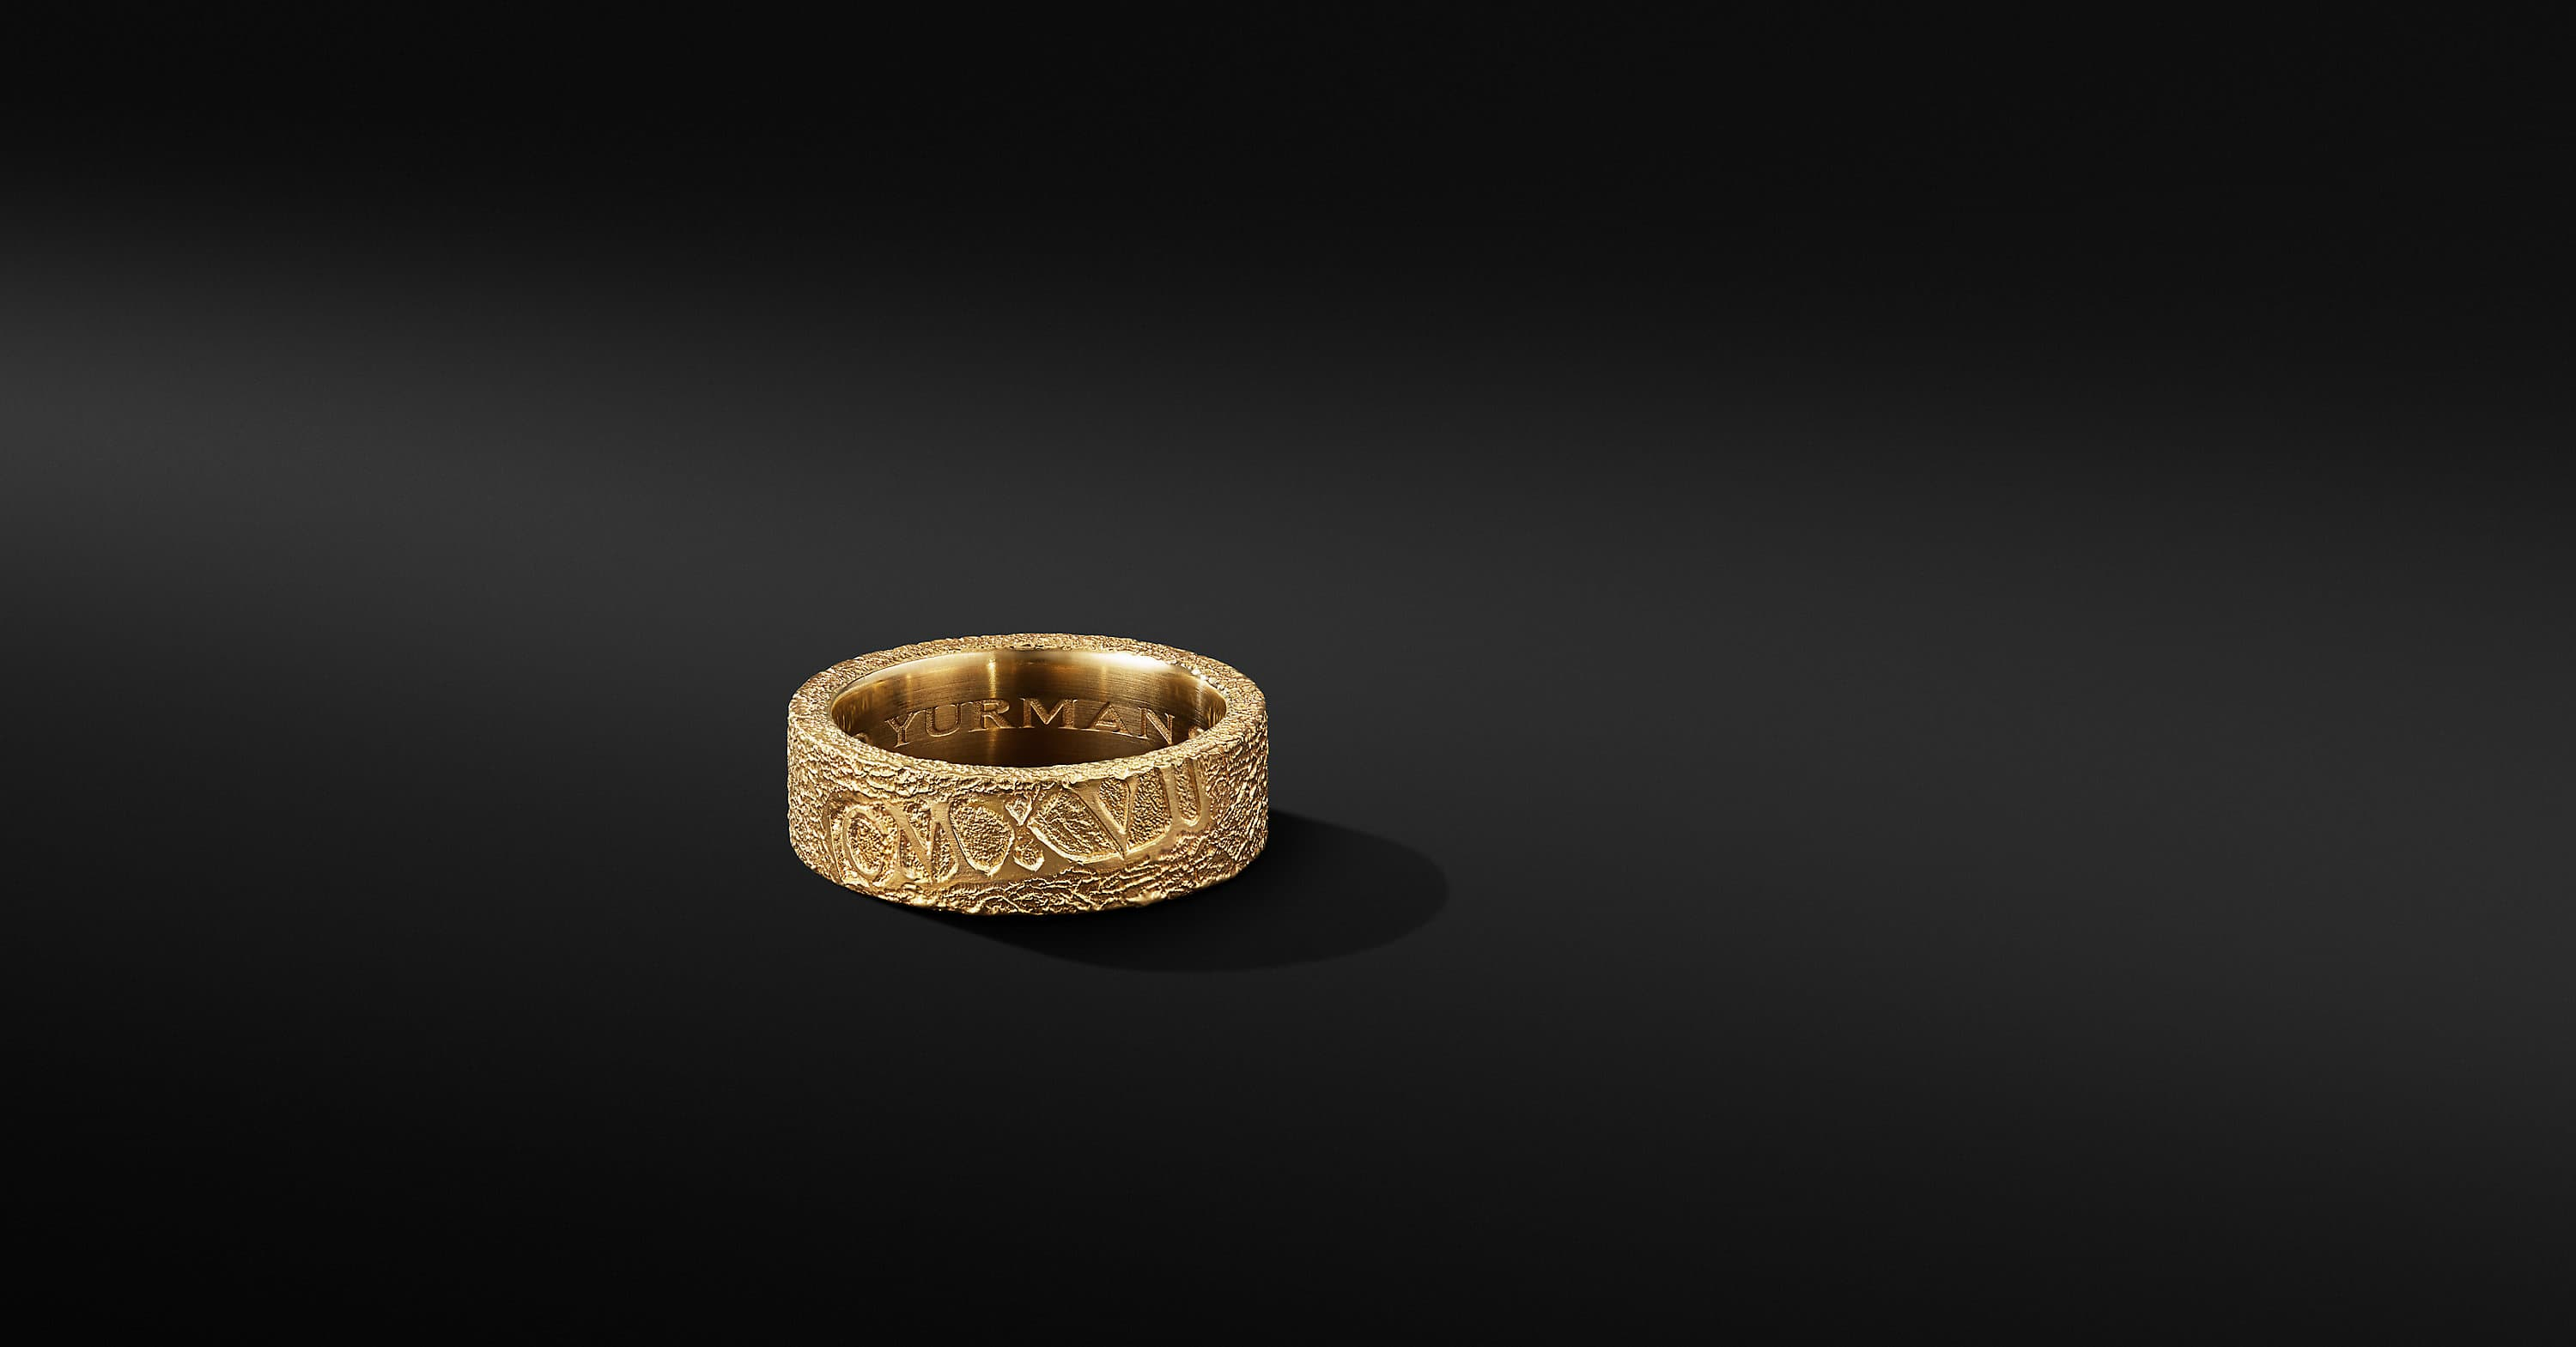 Shipwreck Band Ring in 22K Yellow Gold, 8mm